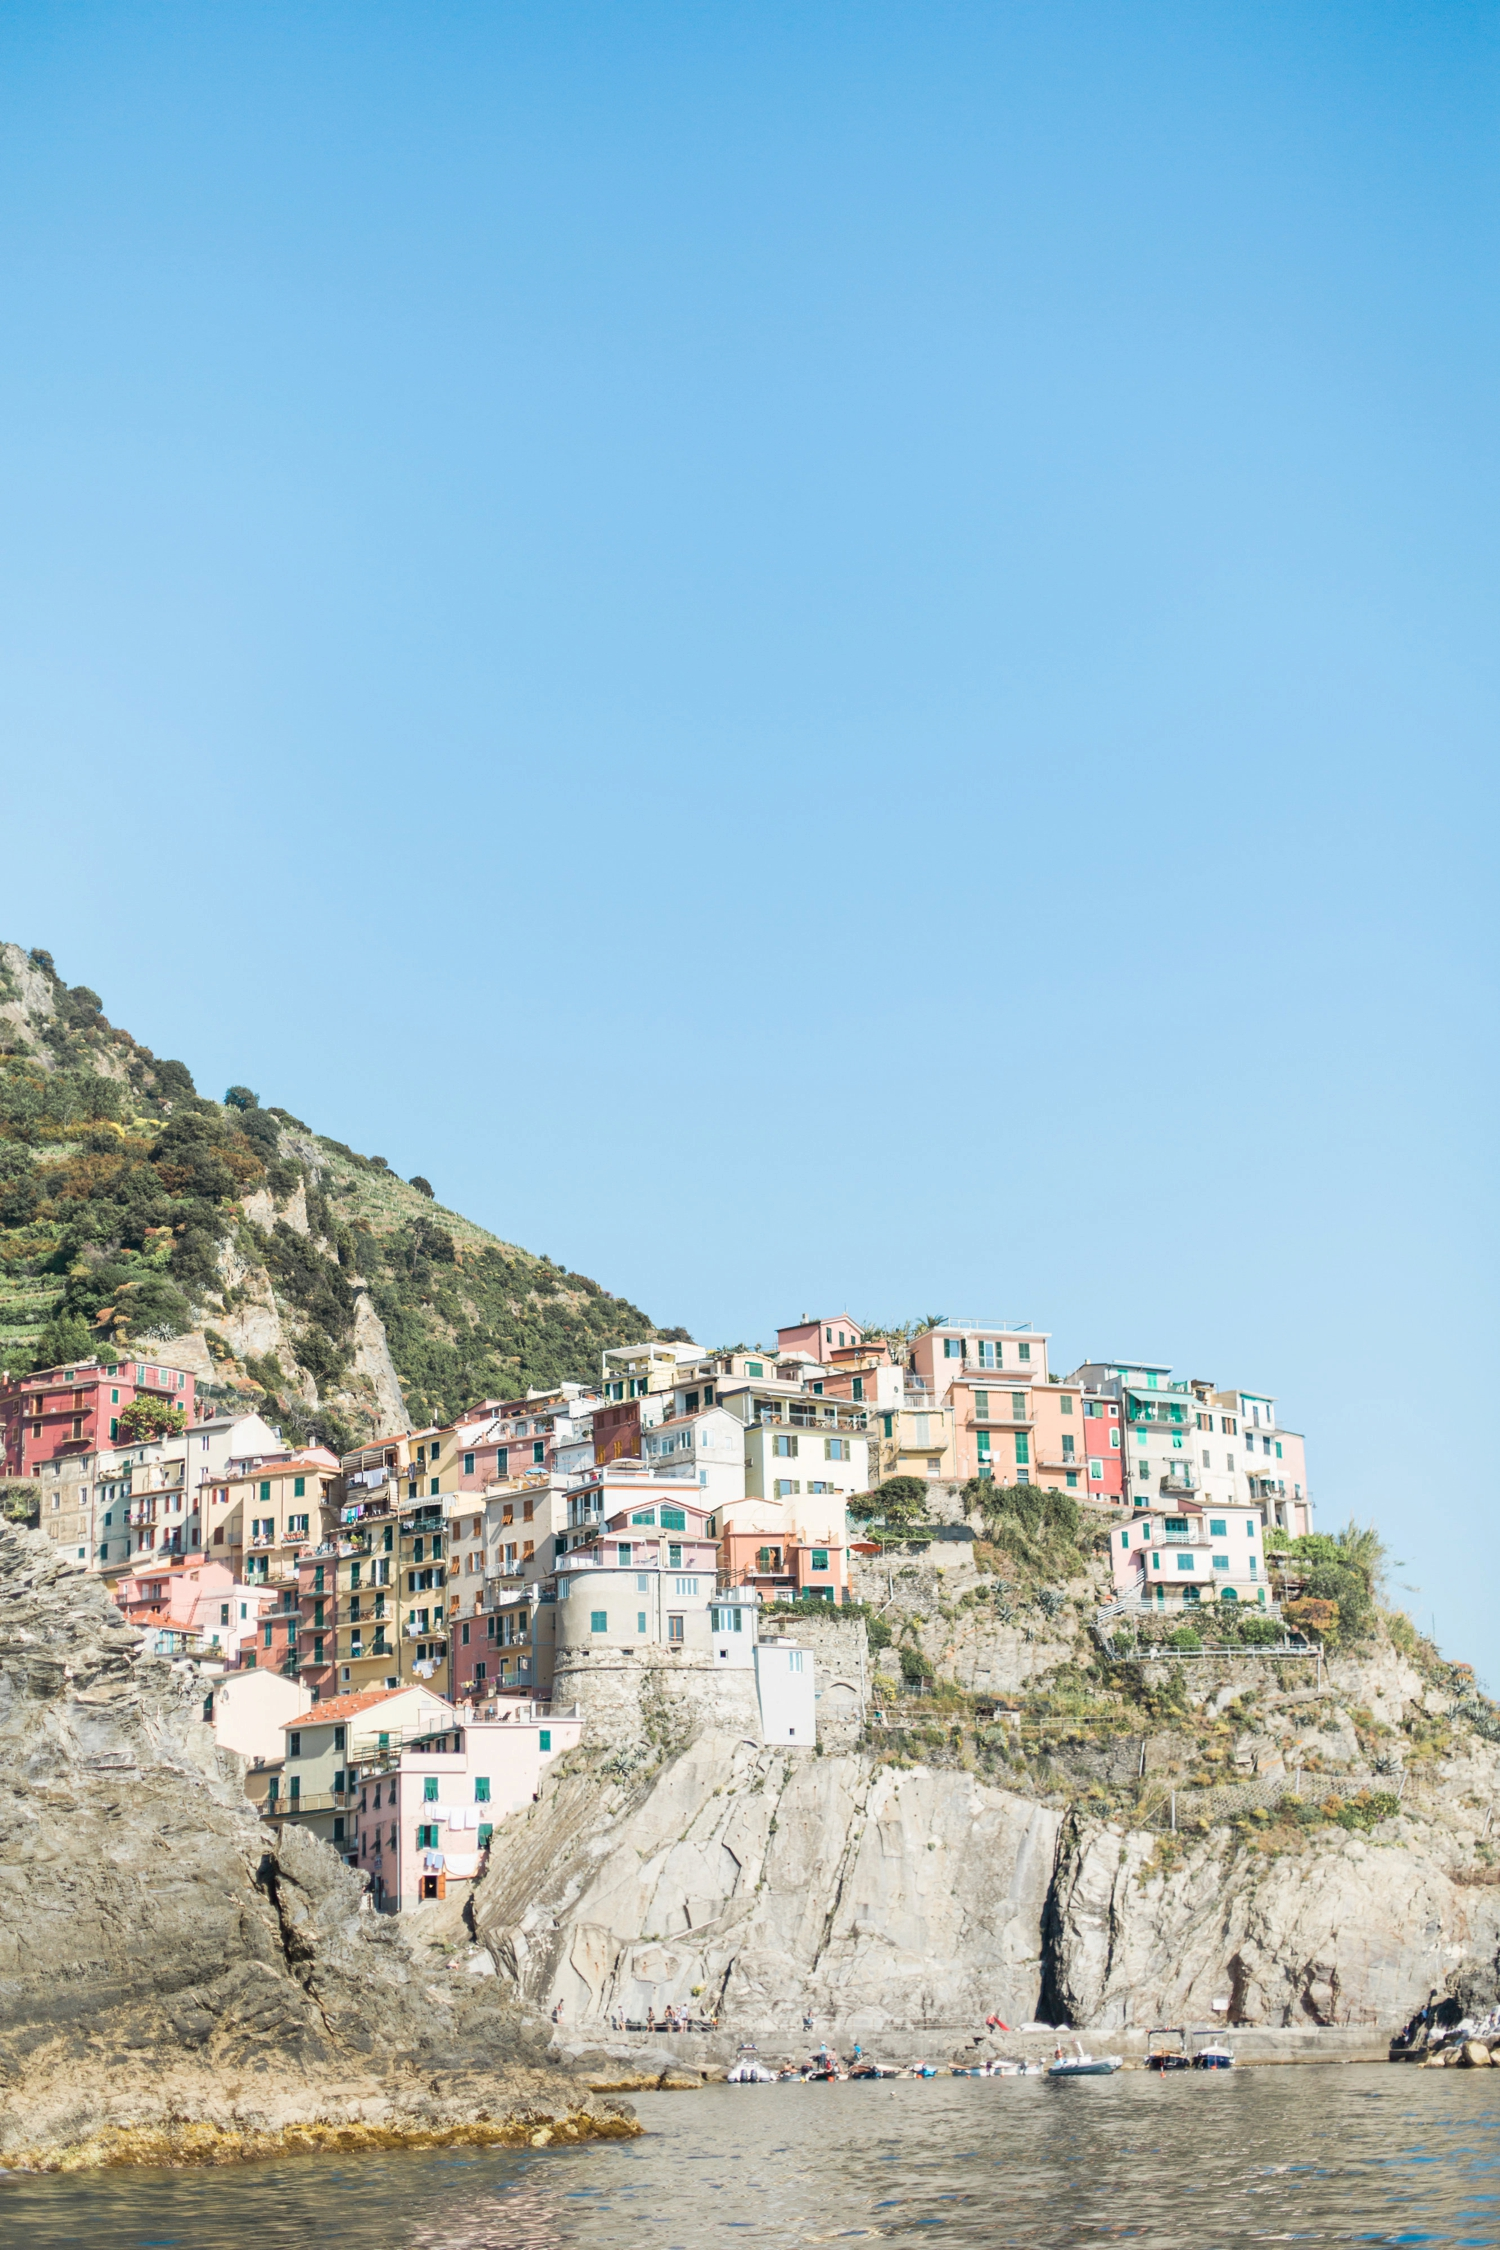 fine-art-film-cinque-terre-italy-wedding-photographer_2978.jpg